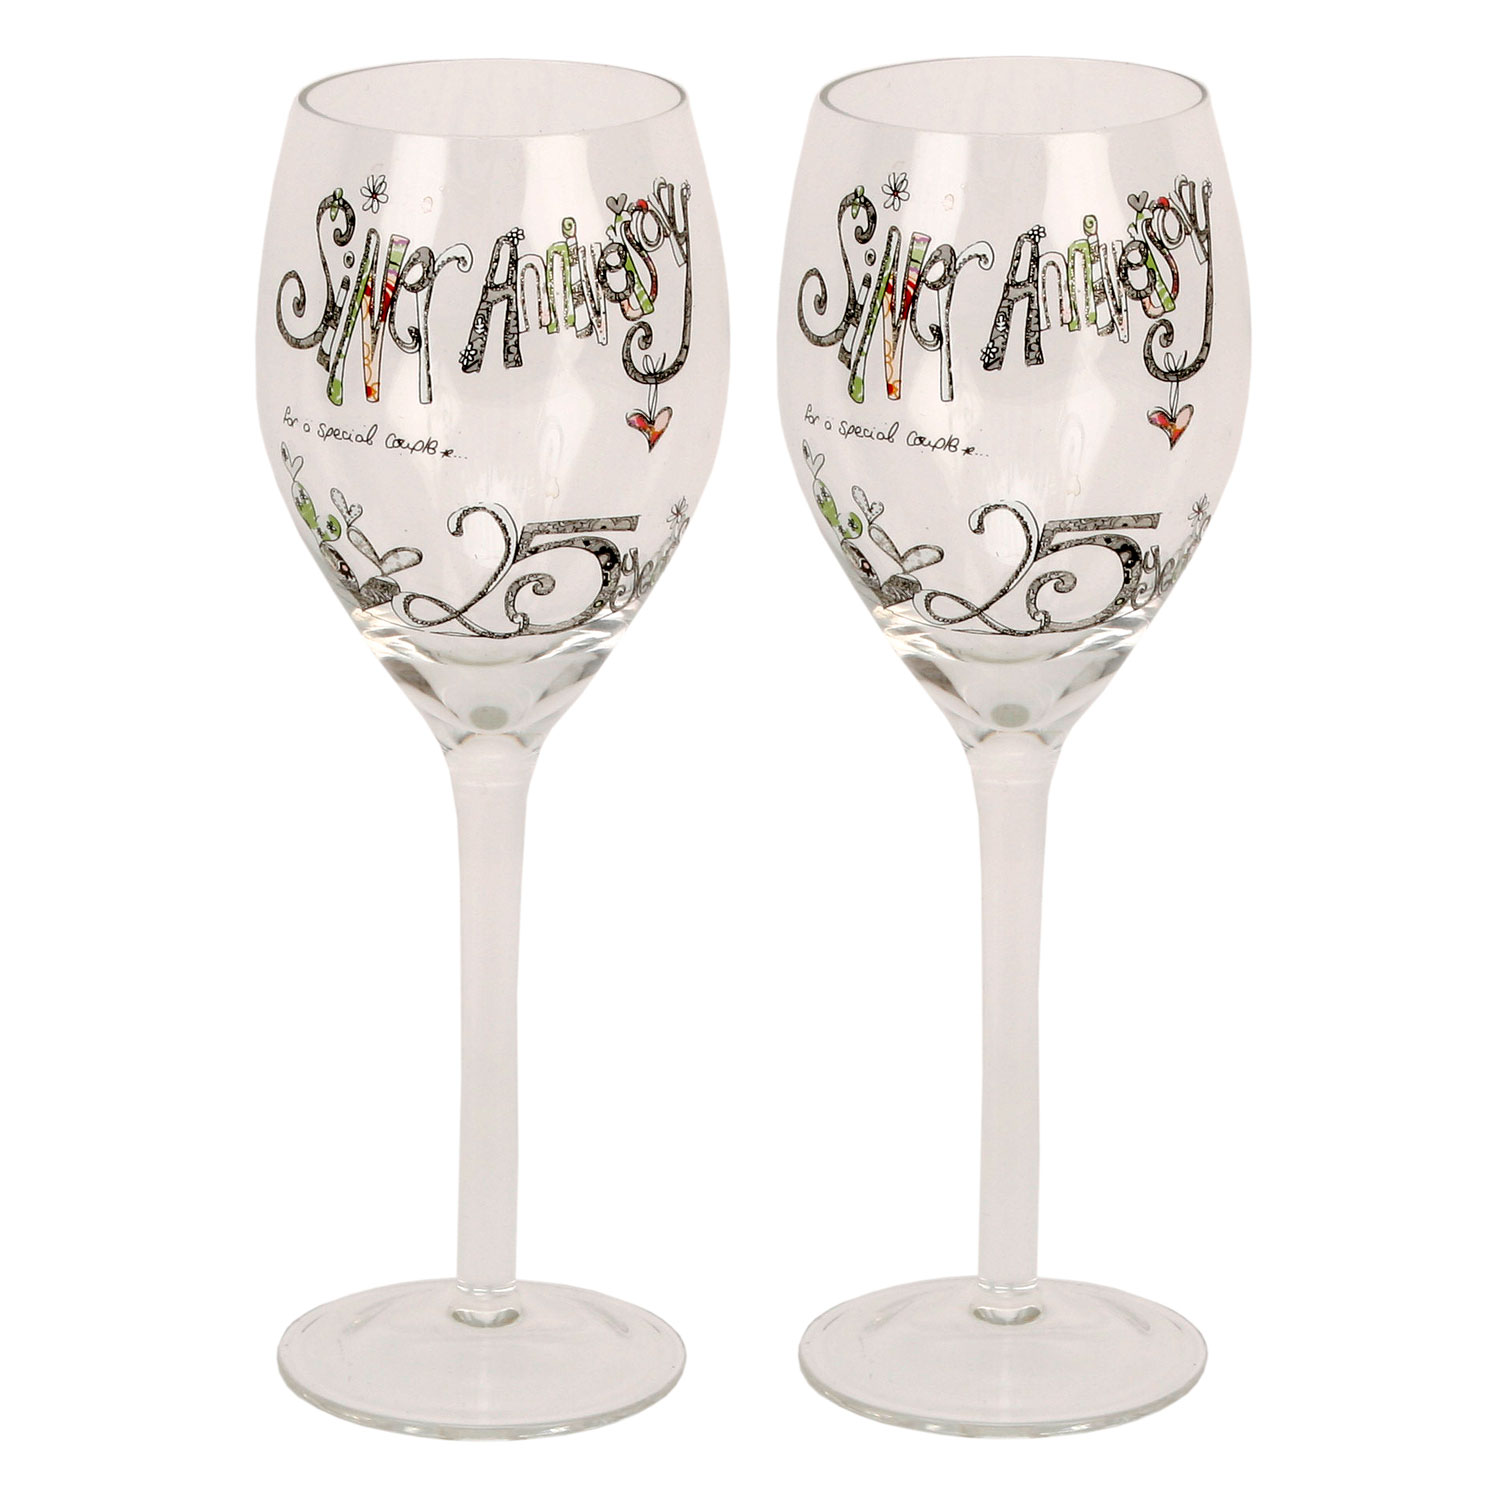 Tracey Russell Decorative Wine Glasses 25th Silver Anniversary Gift Set Glass